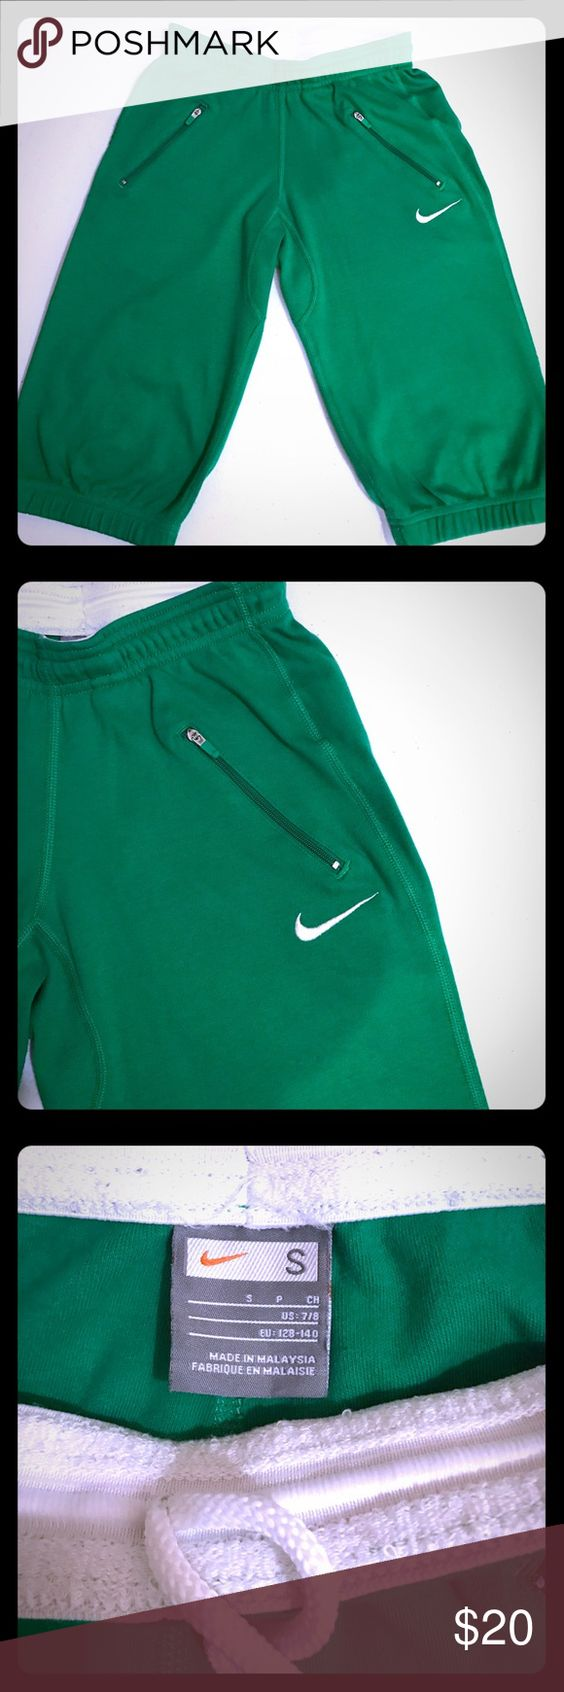 Women's Nike Sports Shorts Size S 7/8 Pre-Owned in excellent condition 🍀 Nike Shorts